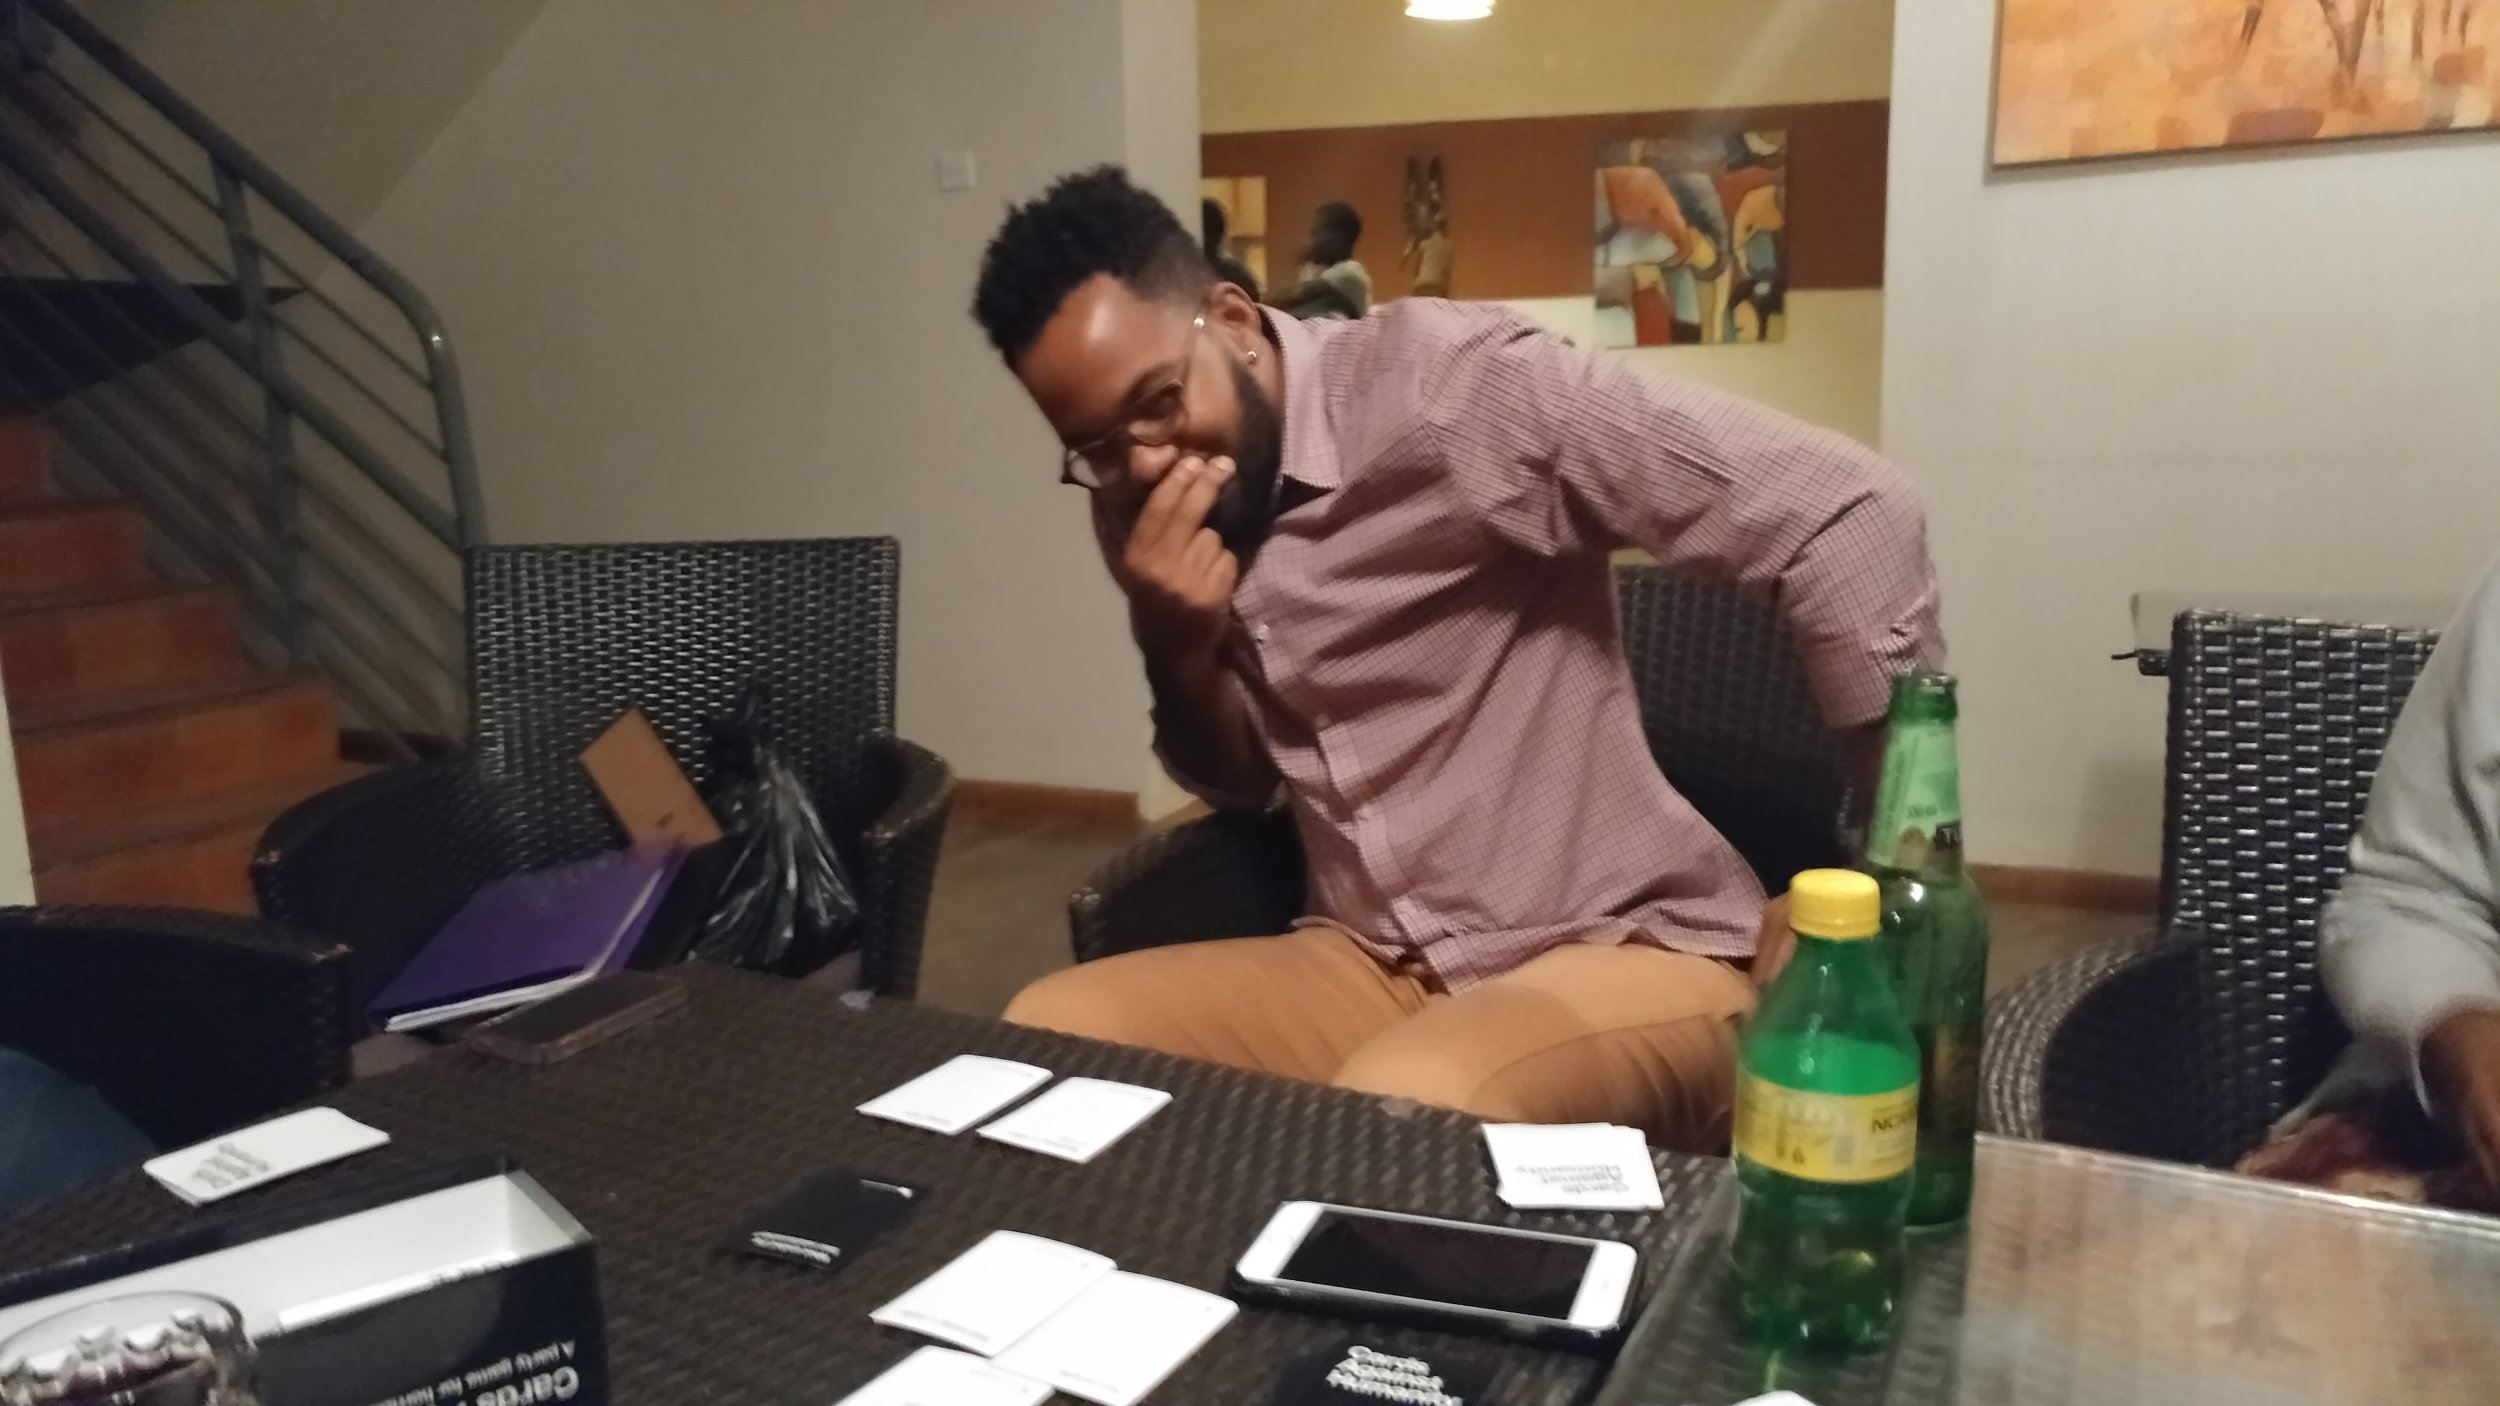 The late night games of Cards Against Humanity got pretty intense. Right, Temesgen?